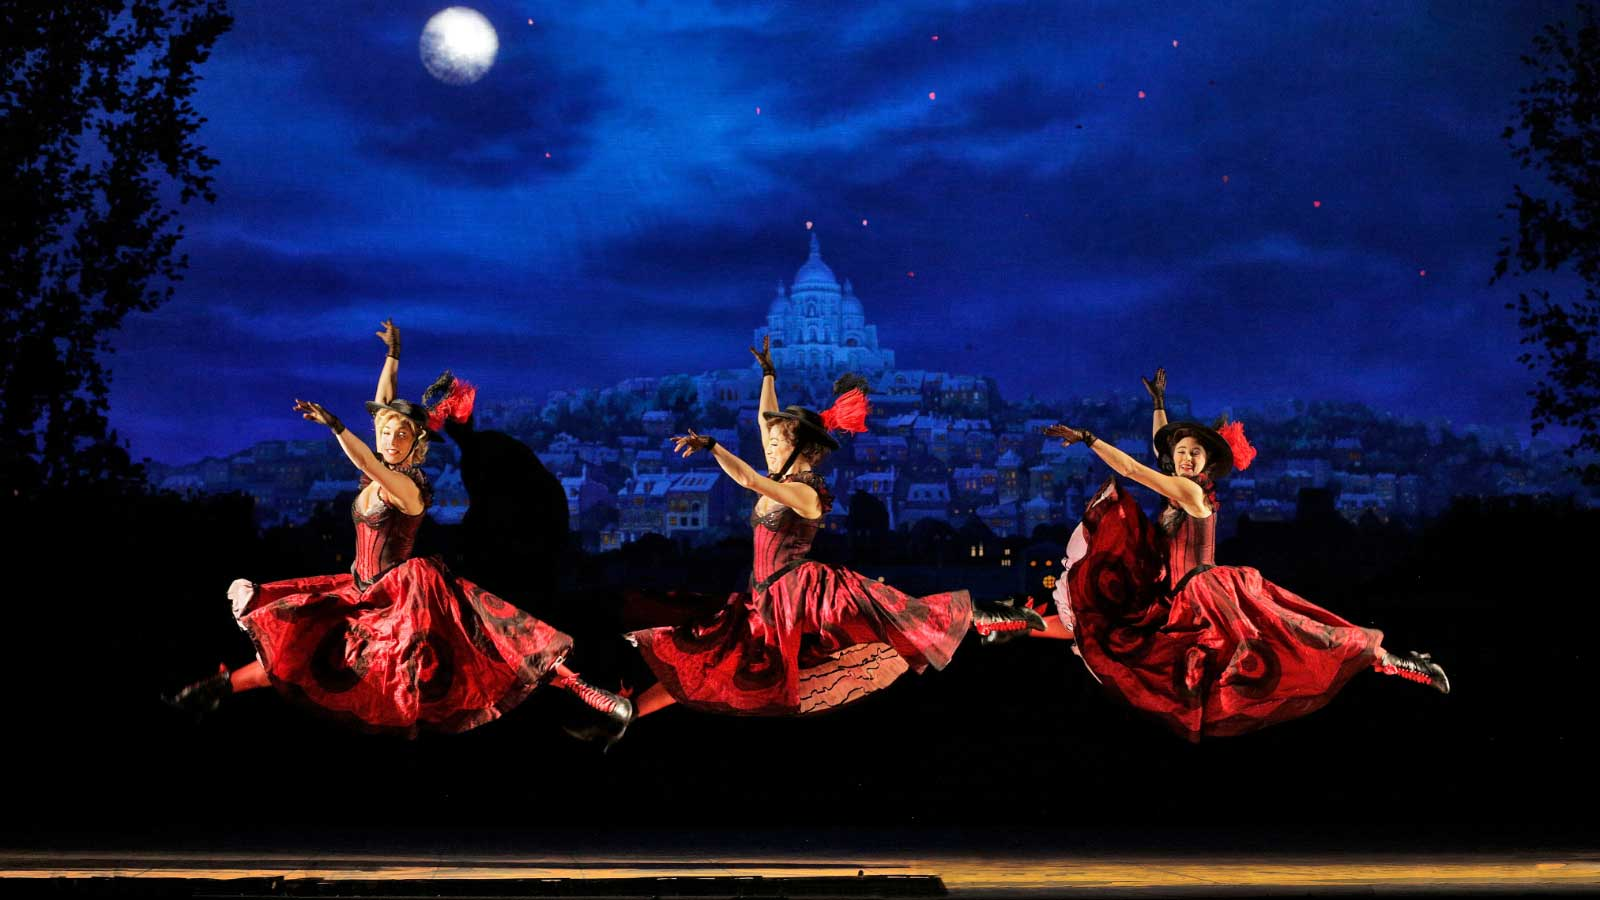 Erin Monteleone, Emery LeCrone and Kristen Schoen-Rene doing a jete in the air wearing their Red and Black Can Can dresses. There is a view of Paris at night behind them.